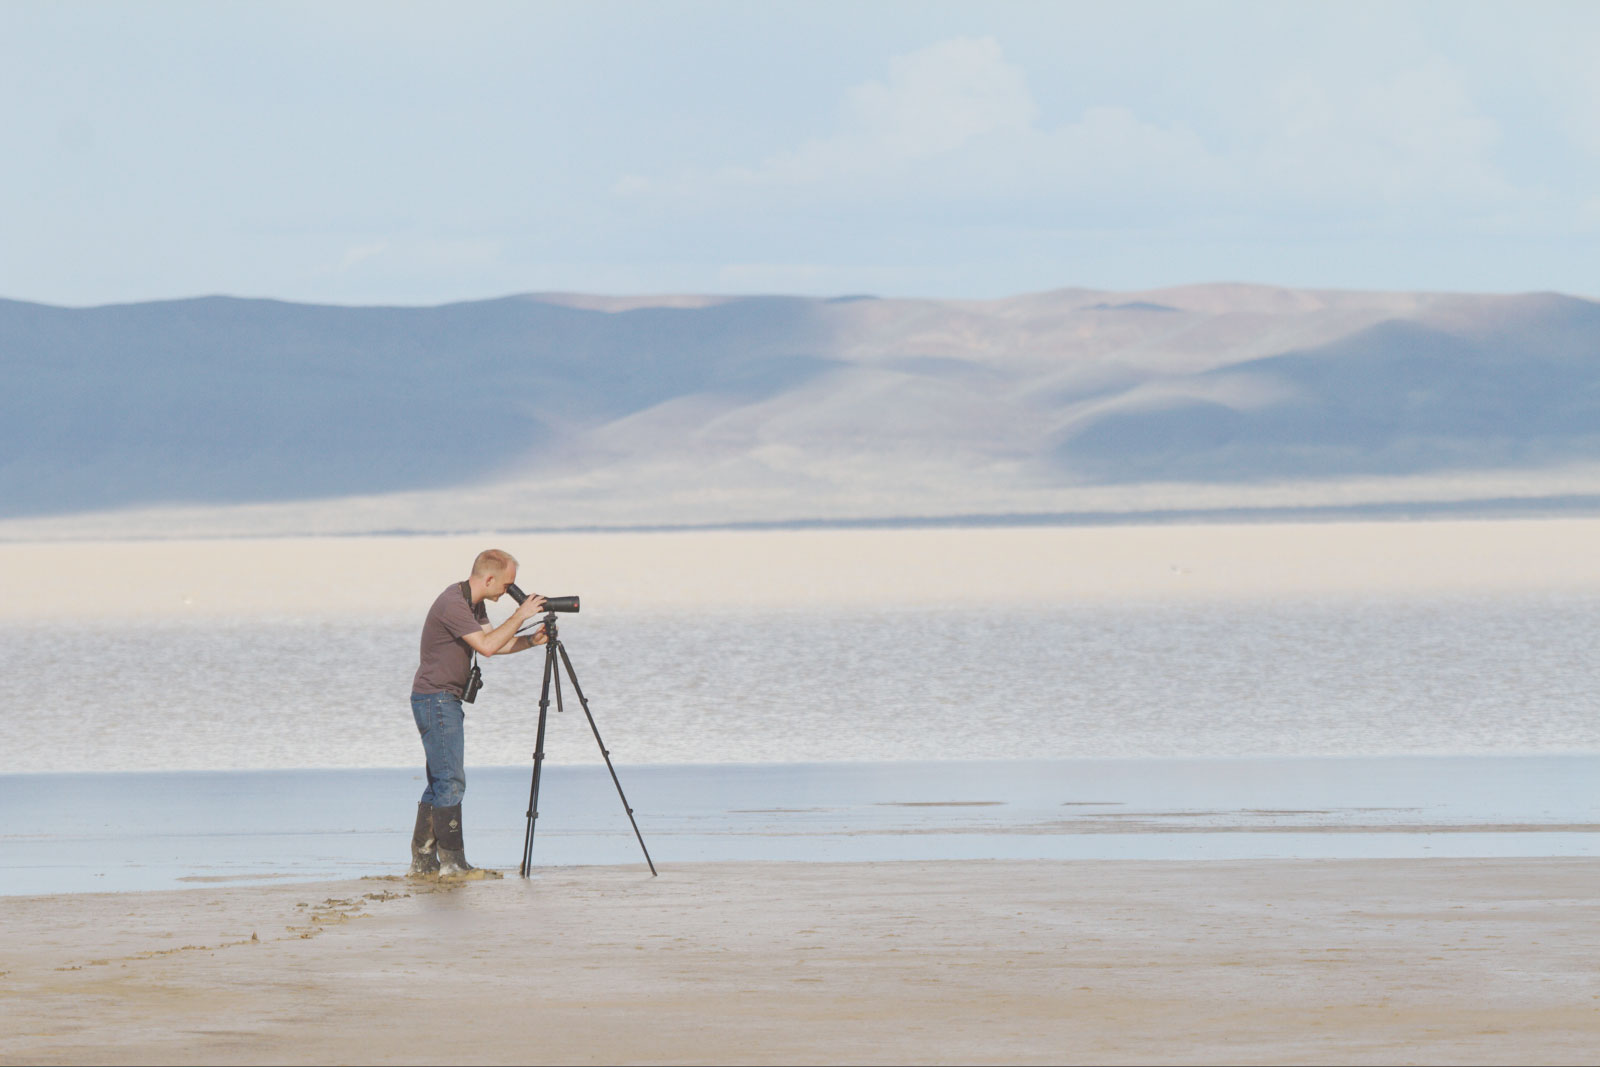 Noah Strycker scopes for migrating waterfowl at Alvord Lake southeast of Malheur National Wildlife Refuge in Harney County. Bob Keefer